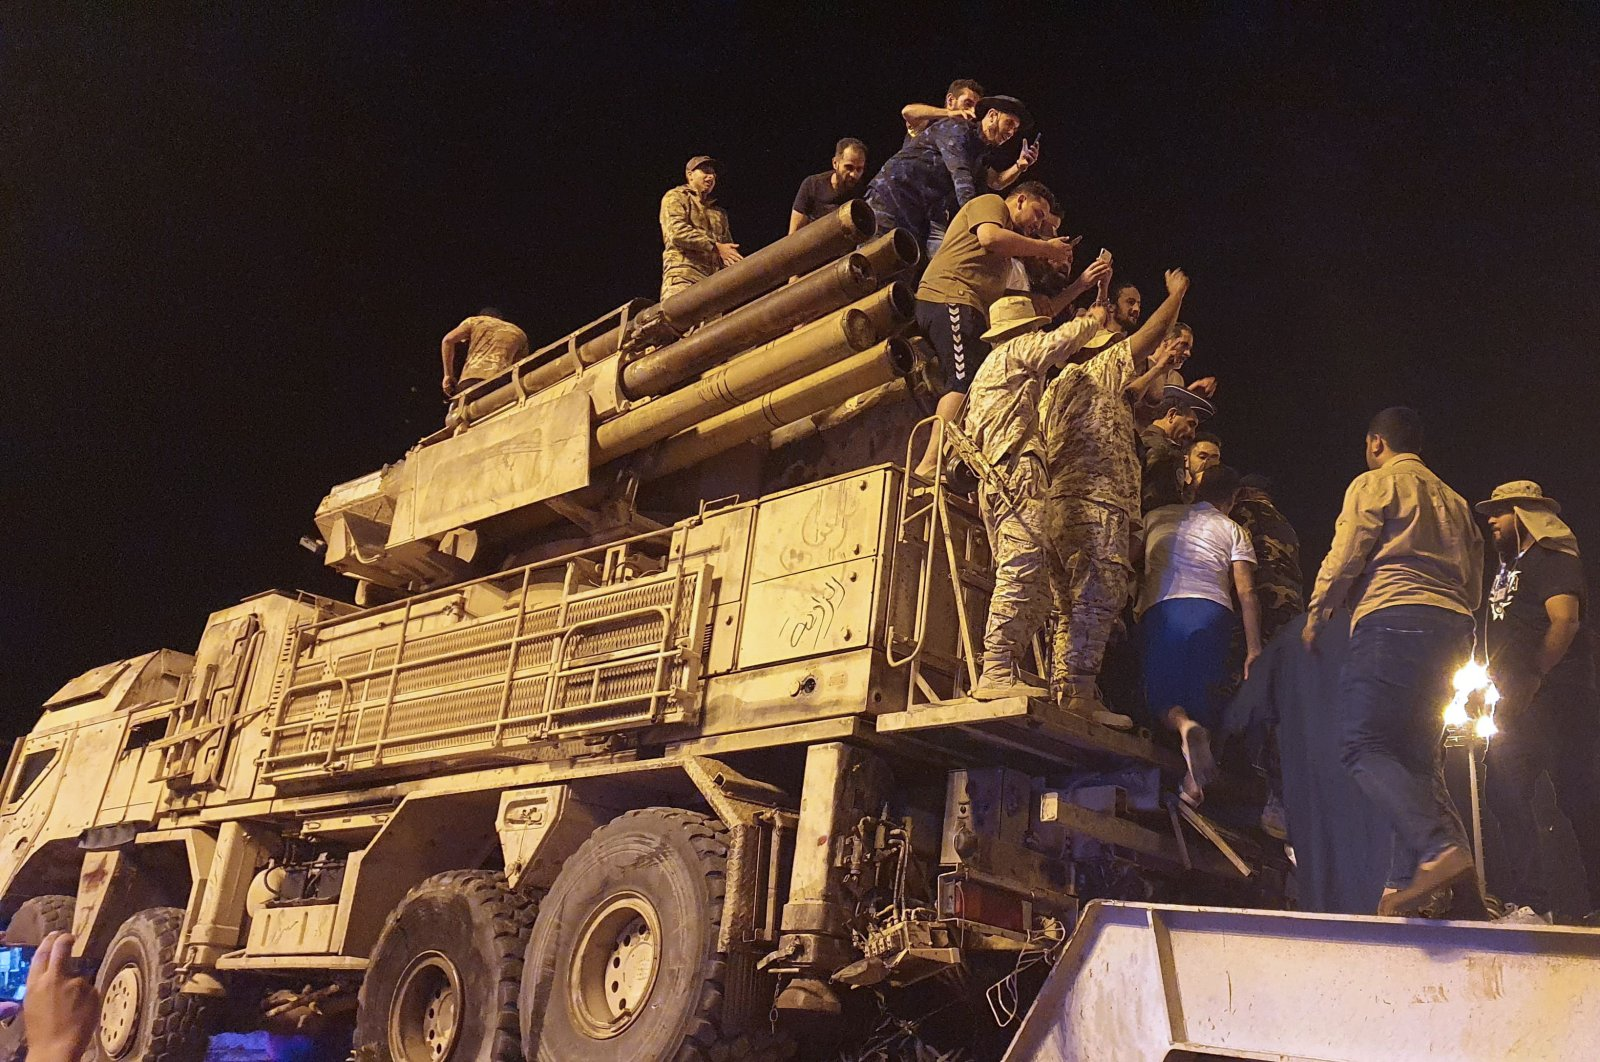 Forces loyal to Libya's U.N.-recognised Government of National Accord (GNA) parade a Pantsir air defense system truck in the capital Tripoli after its capture at al-Watiya airbase, May 20, 2020. (AFP Photo)